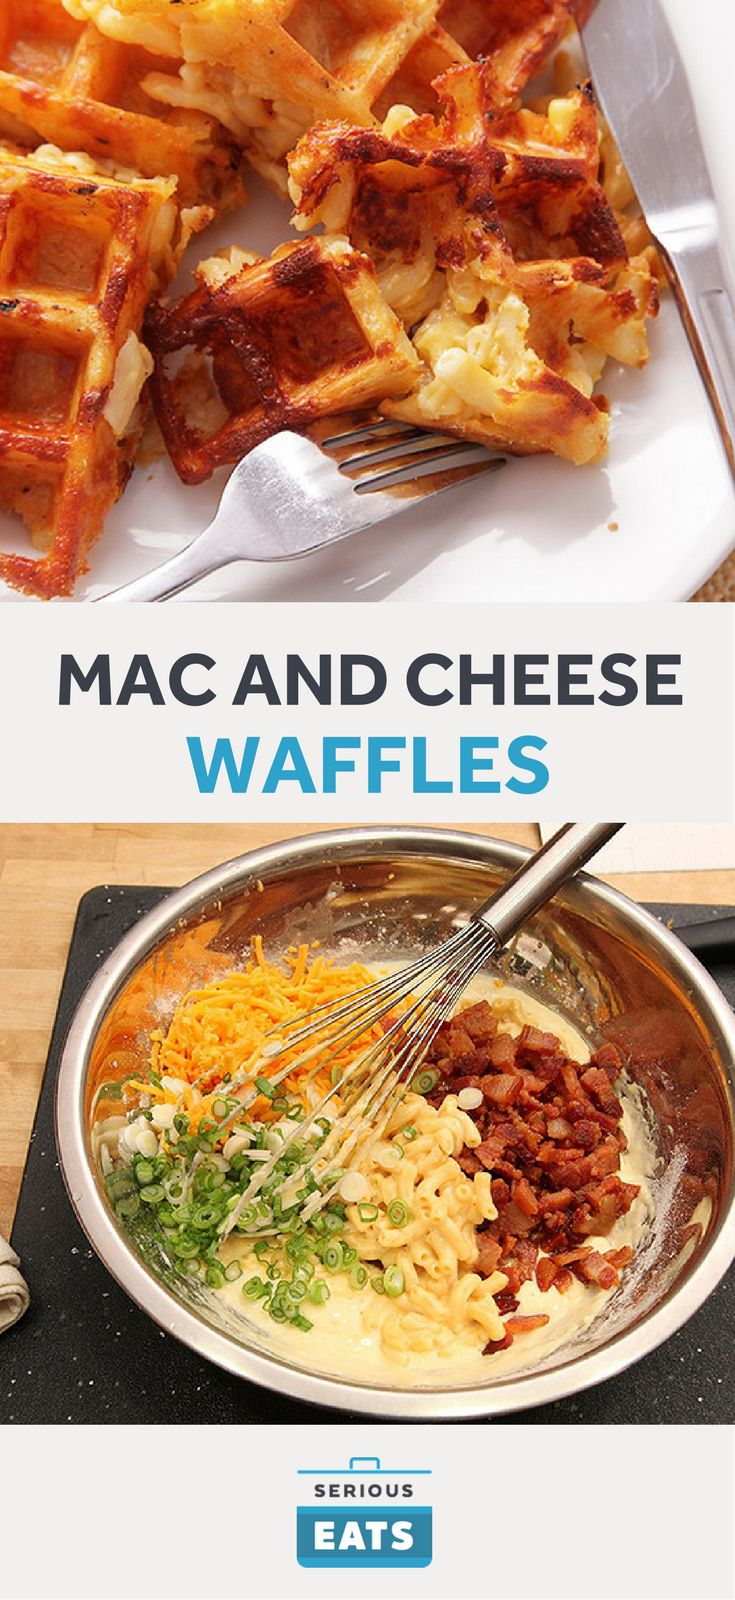 """Waffled macaroni and cheese might not rank quite as high on the list of """"things you must try before you die"""" as, say, a fresh-from-the-water oyster, or a sliver of Parmesan sliced off of a wheel that has just been opened in front of your eyes, or a bit of playful light bondage, but it's certainly good enough that it should immediately make your list of second-tier priorities."""